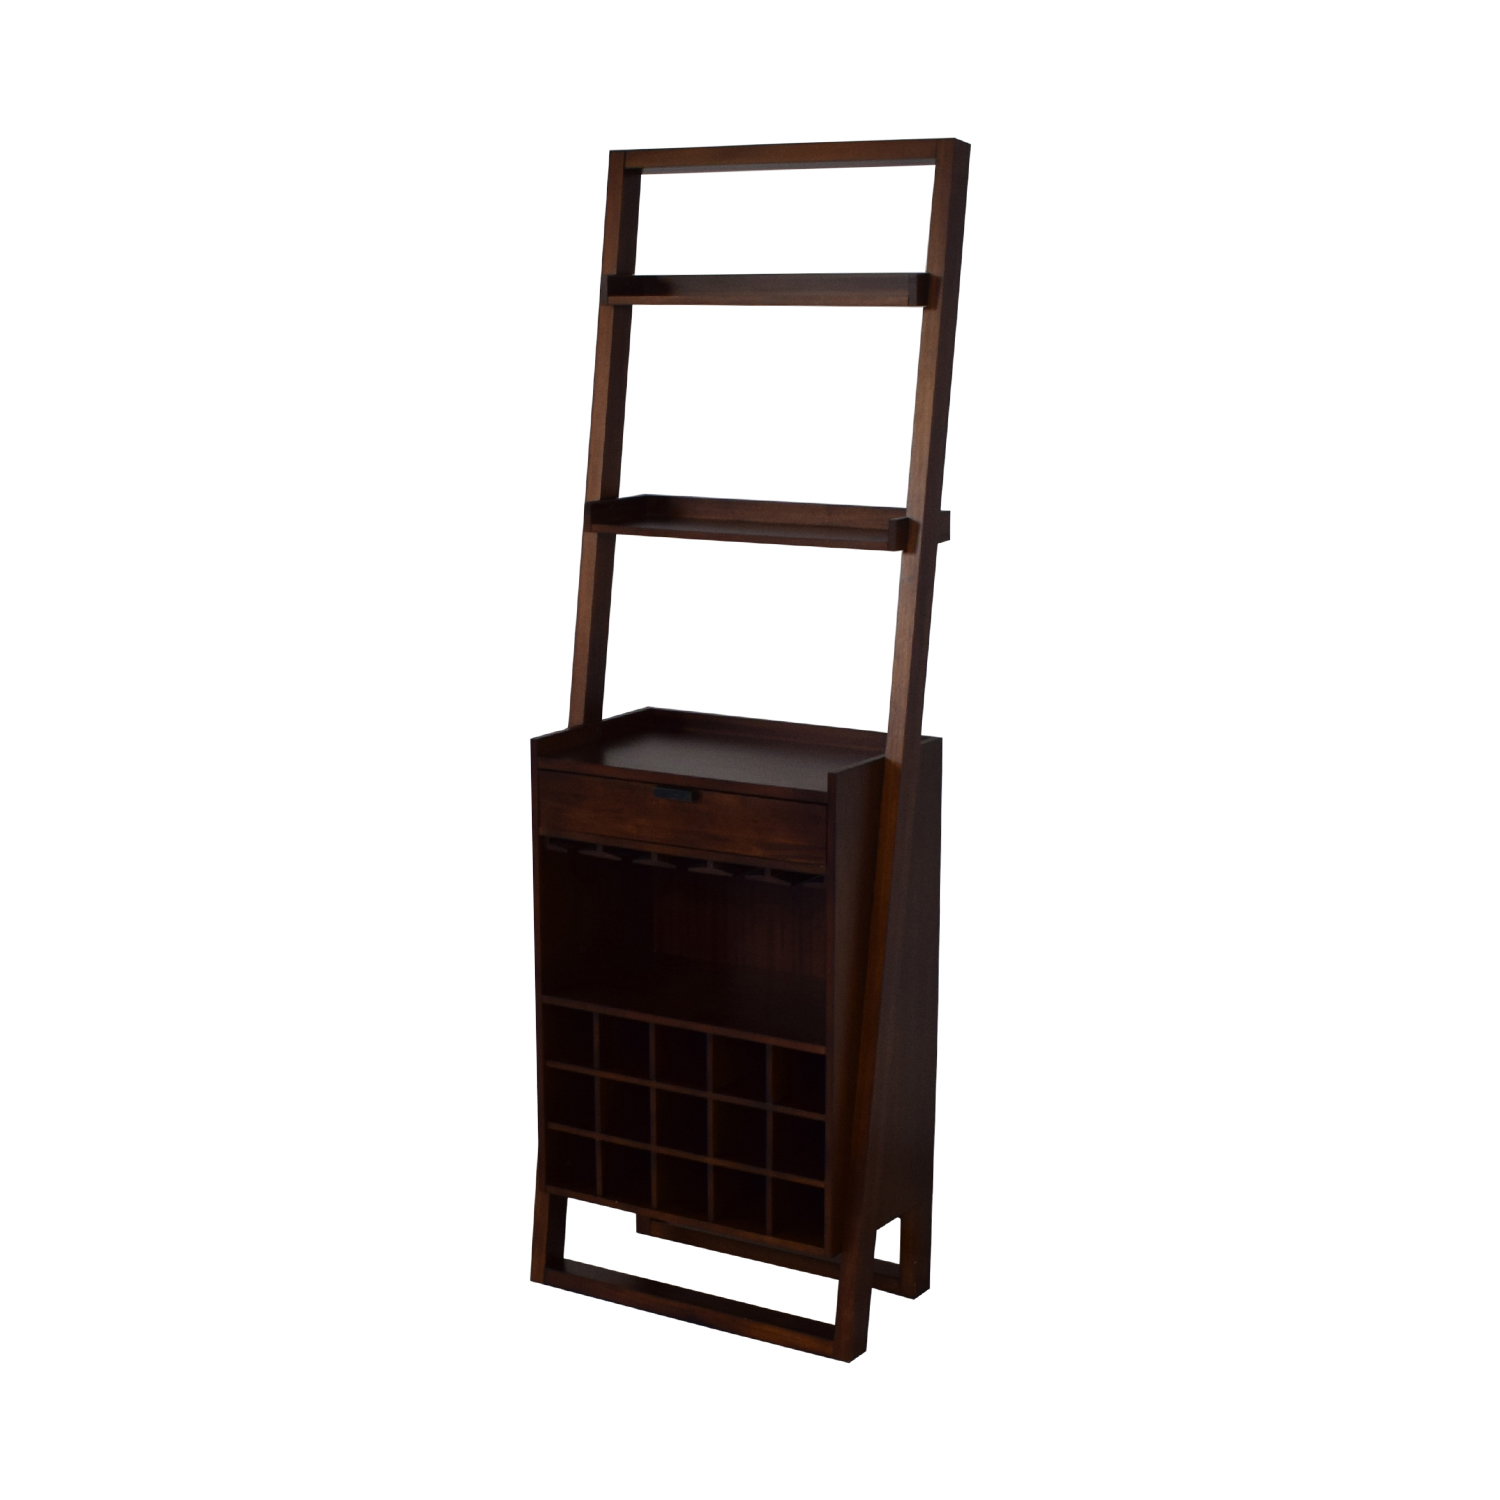 Crate & Barrel Crate & Barrel Sawyer Leaning Wine Bar for sale